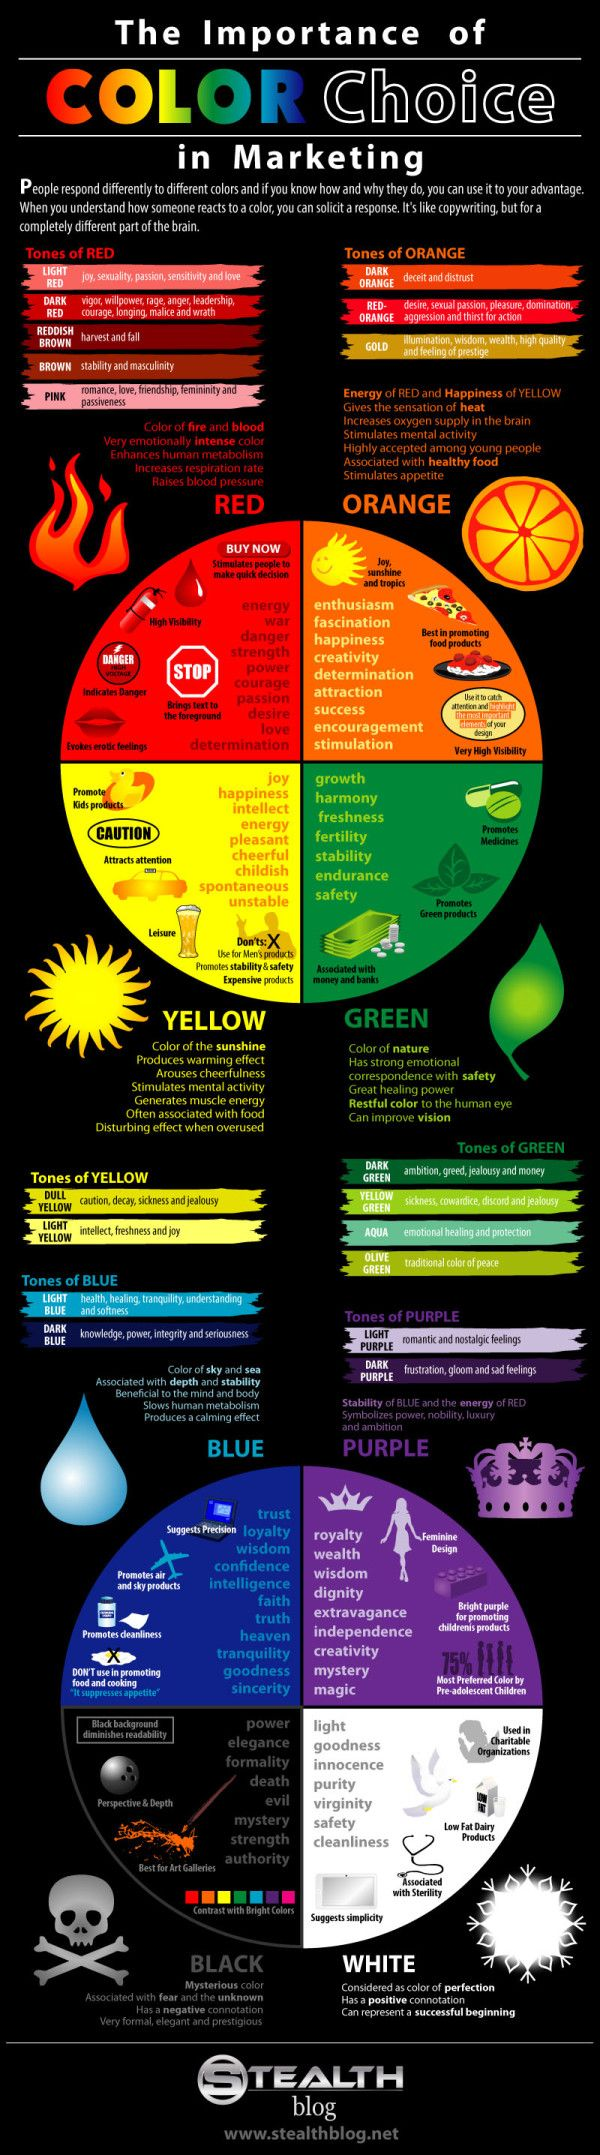 The Importance of Colors in Marketing and Advertis…